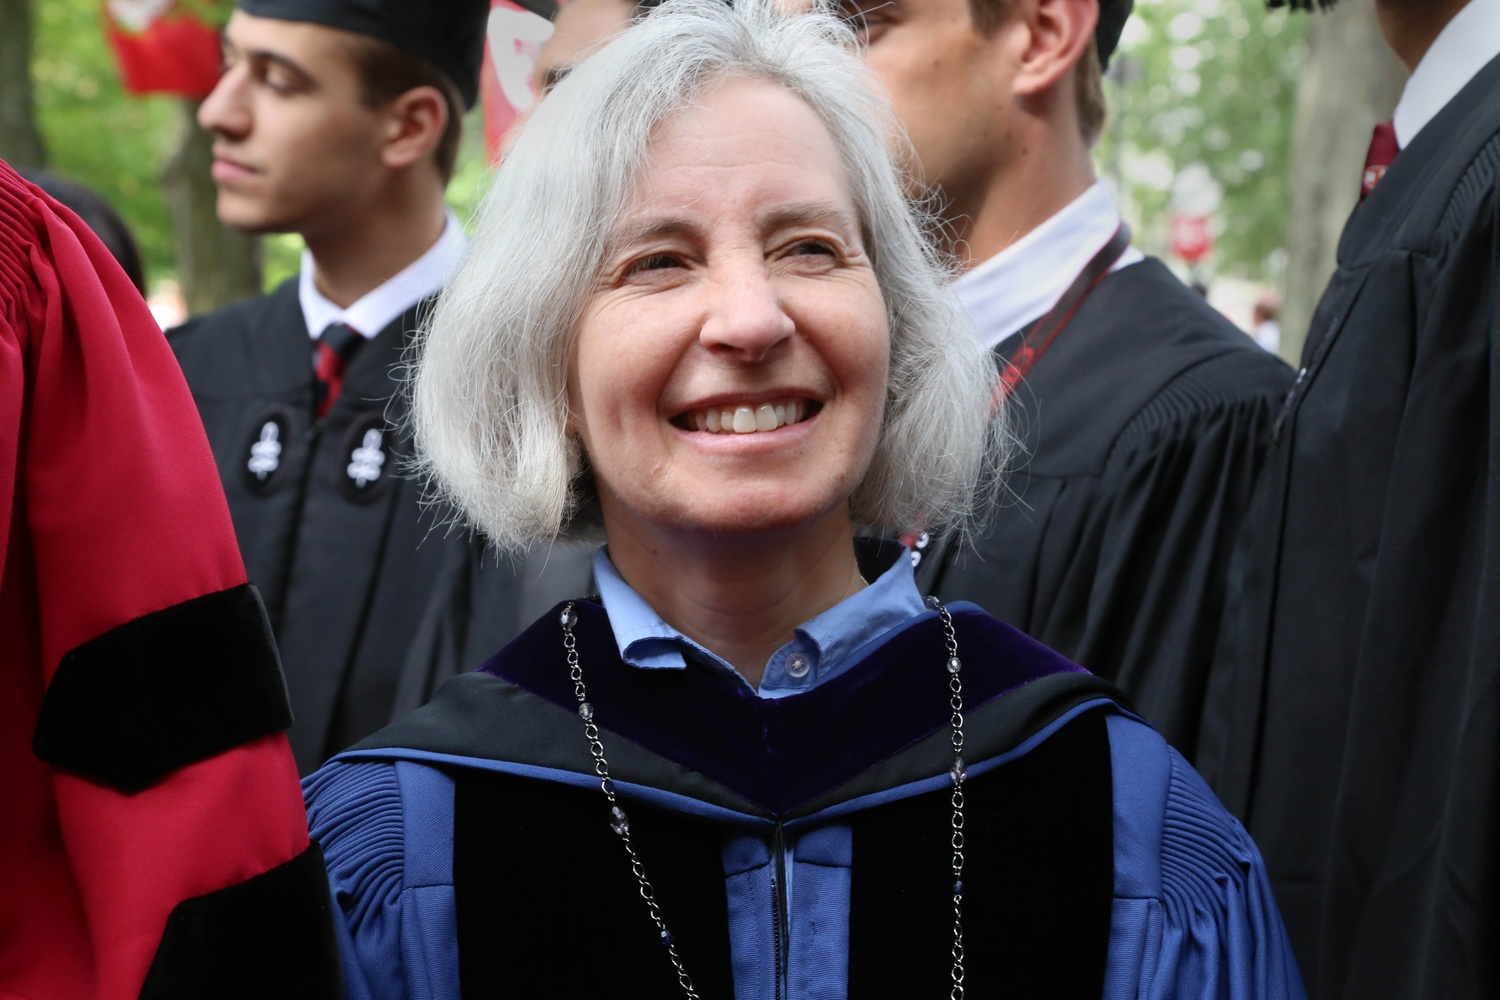 Harvard Law School Dean Martha L. Minow processes with other faculty during Harvard's 364th Commencement on May 28, 2015.